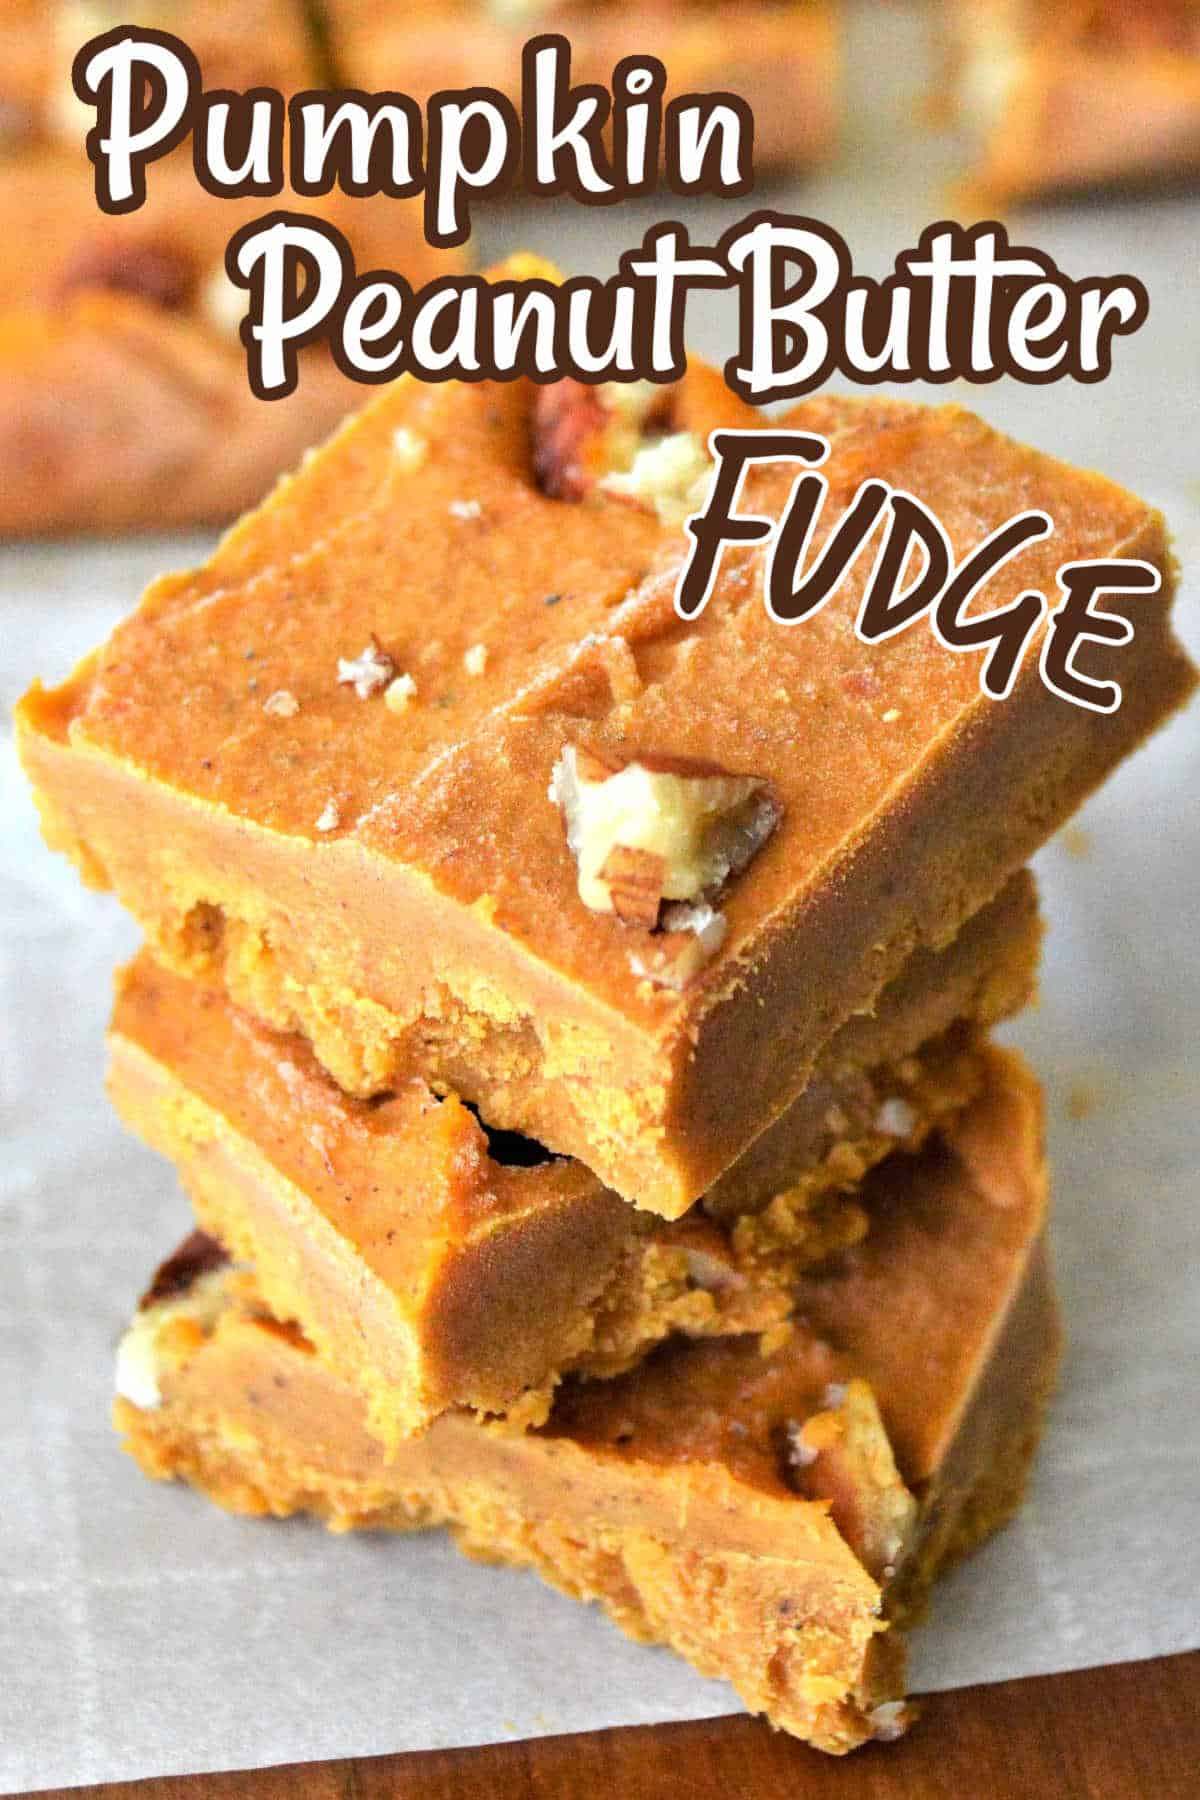 Thre squares of pumpkin fudge stacked on top of each othe with more behind.